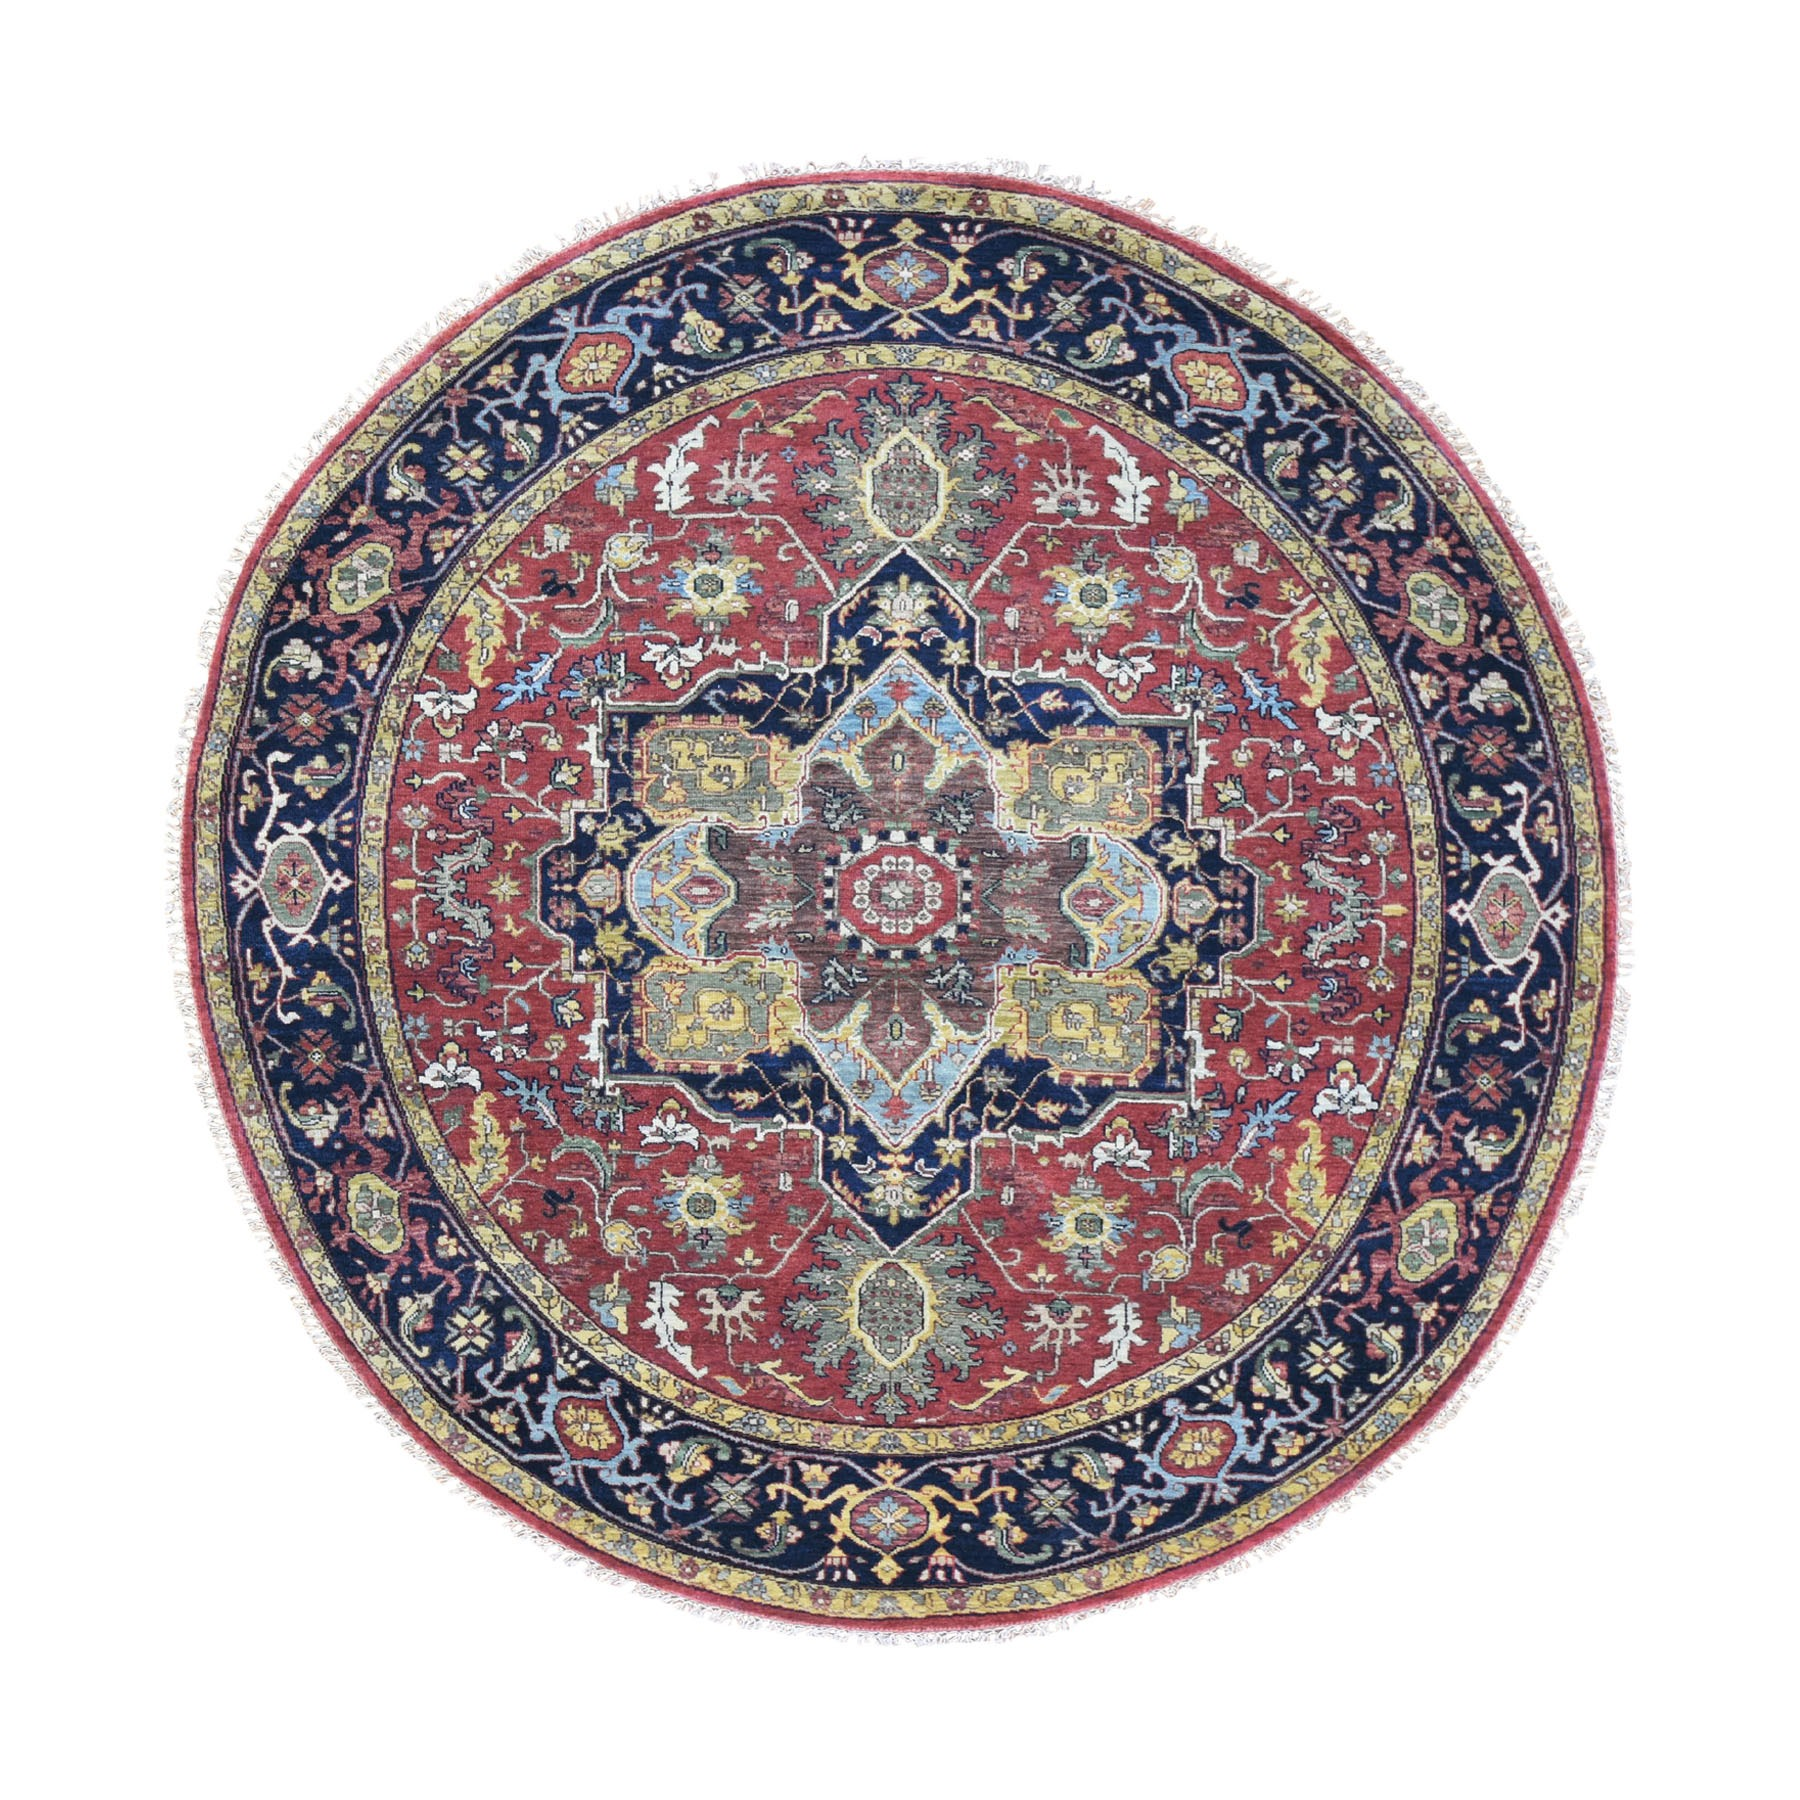 "7'9""x7'9"" Round Red Heriz Revival Pure Wool Hand Woven Oriental Rug"